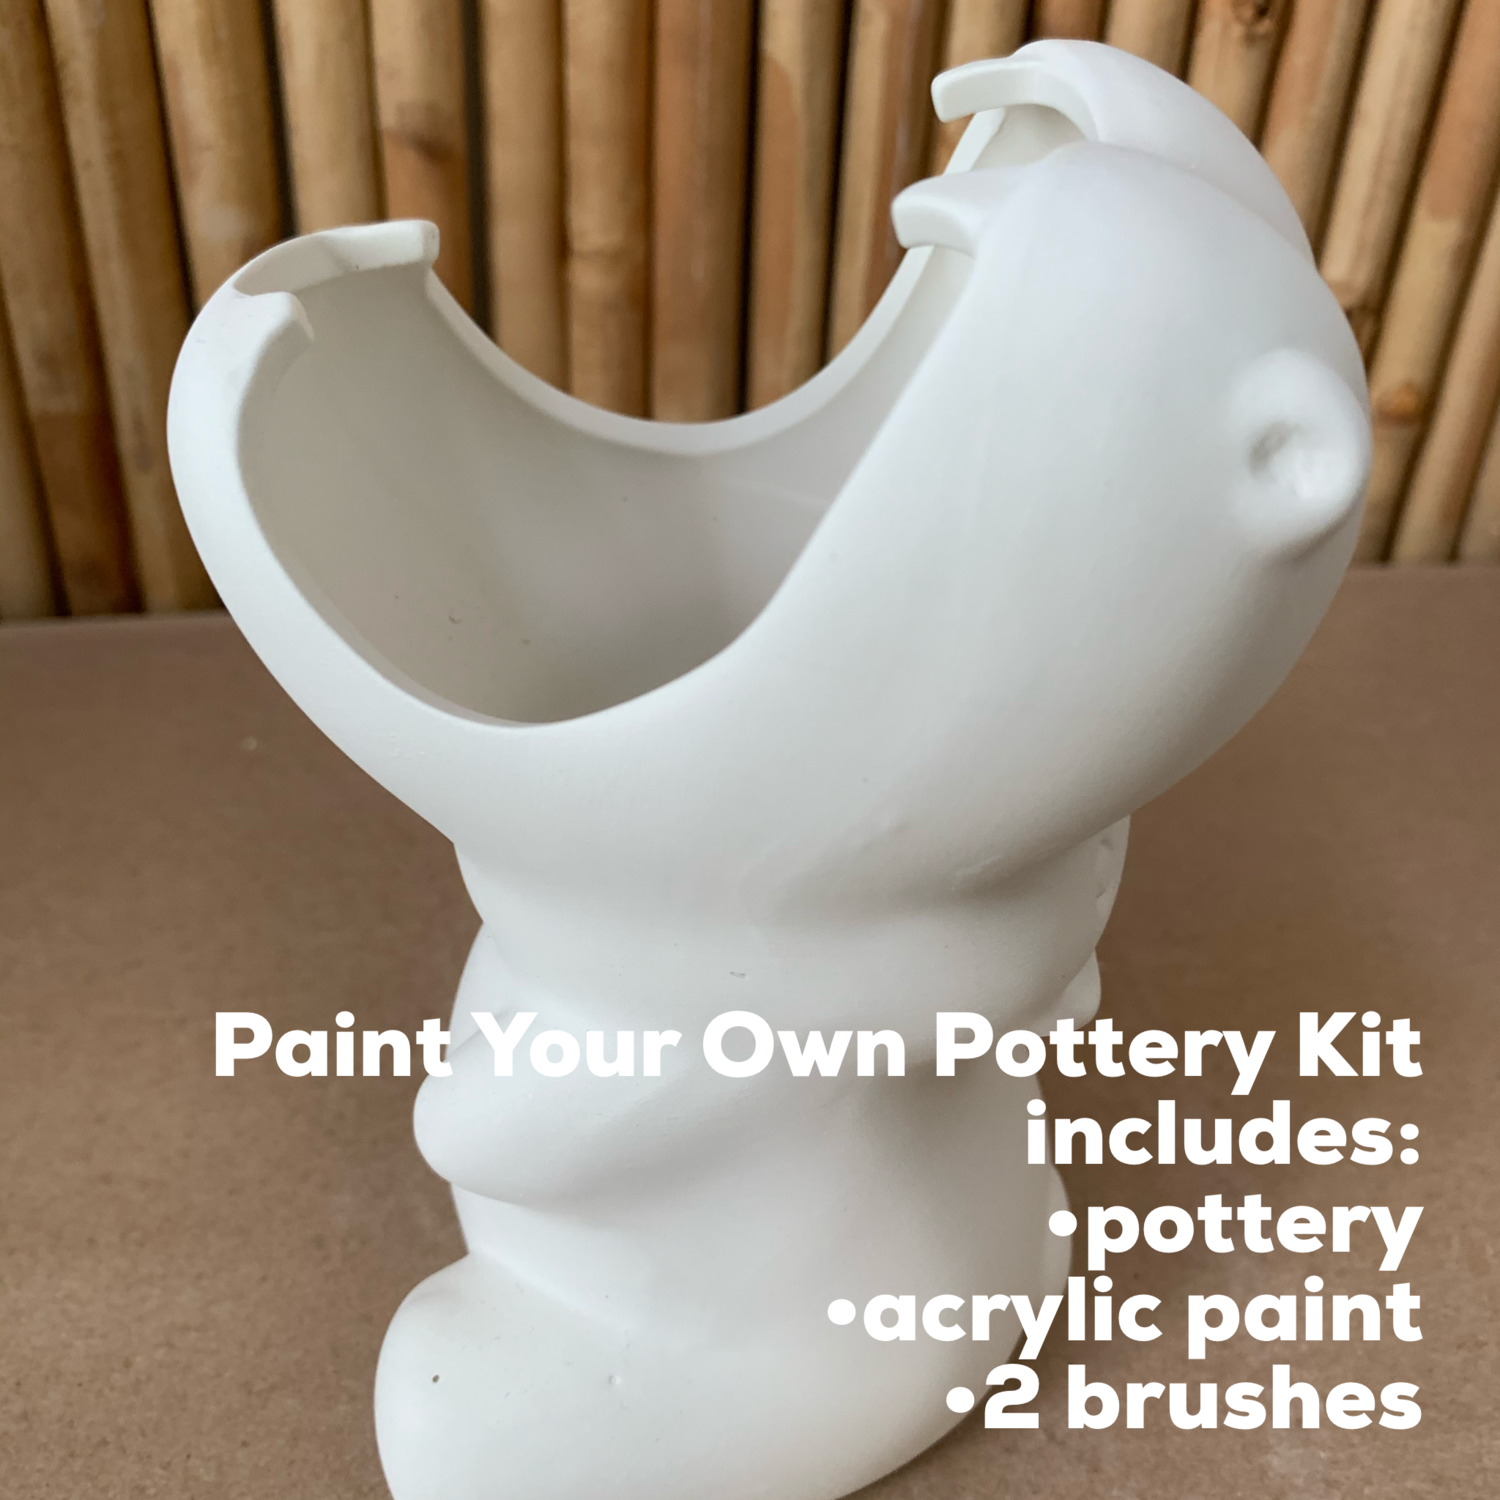 NO FIRE Paint Your Own Pottery Kit -  Ceramic Hippo Pencil Holder Acrylic Painting Kit